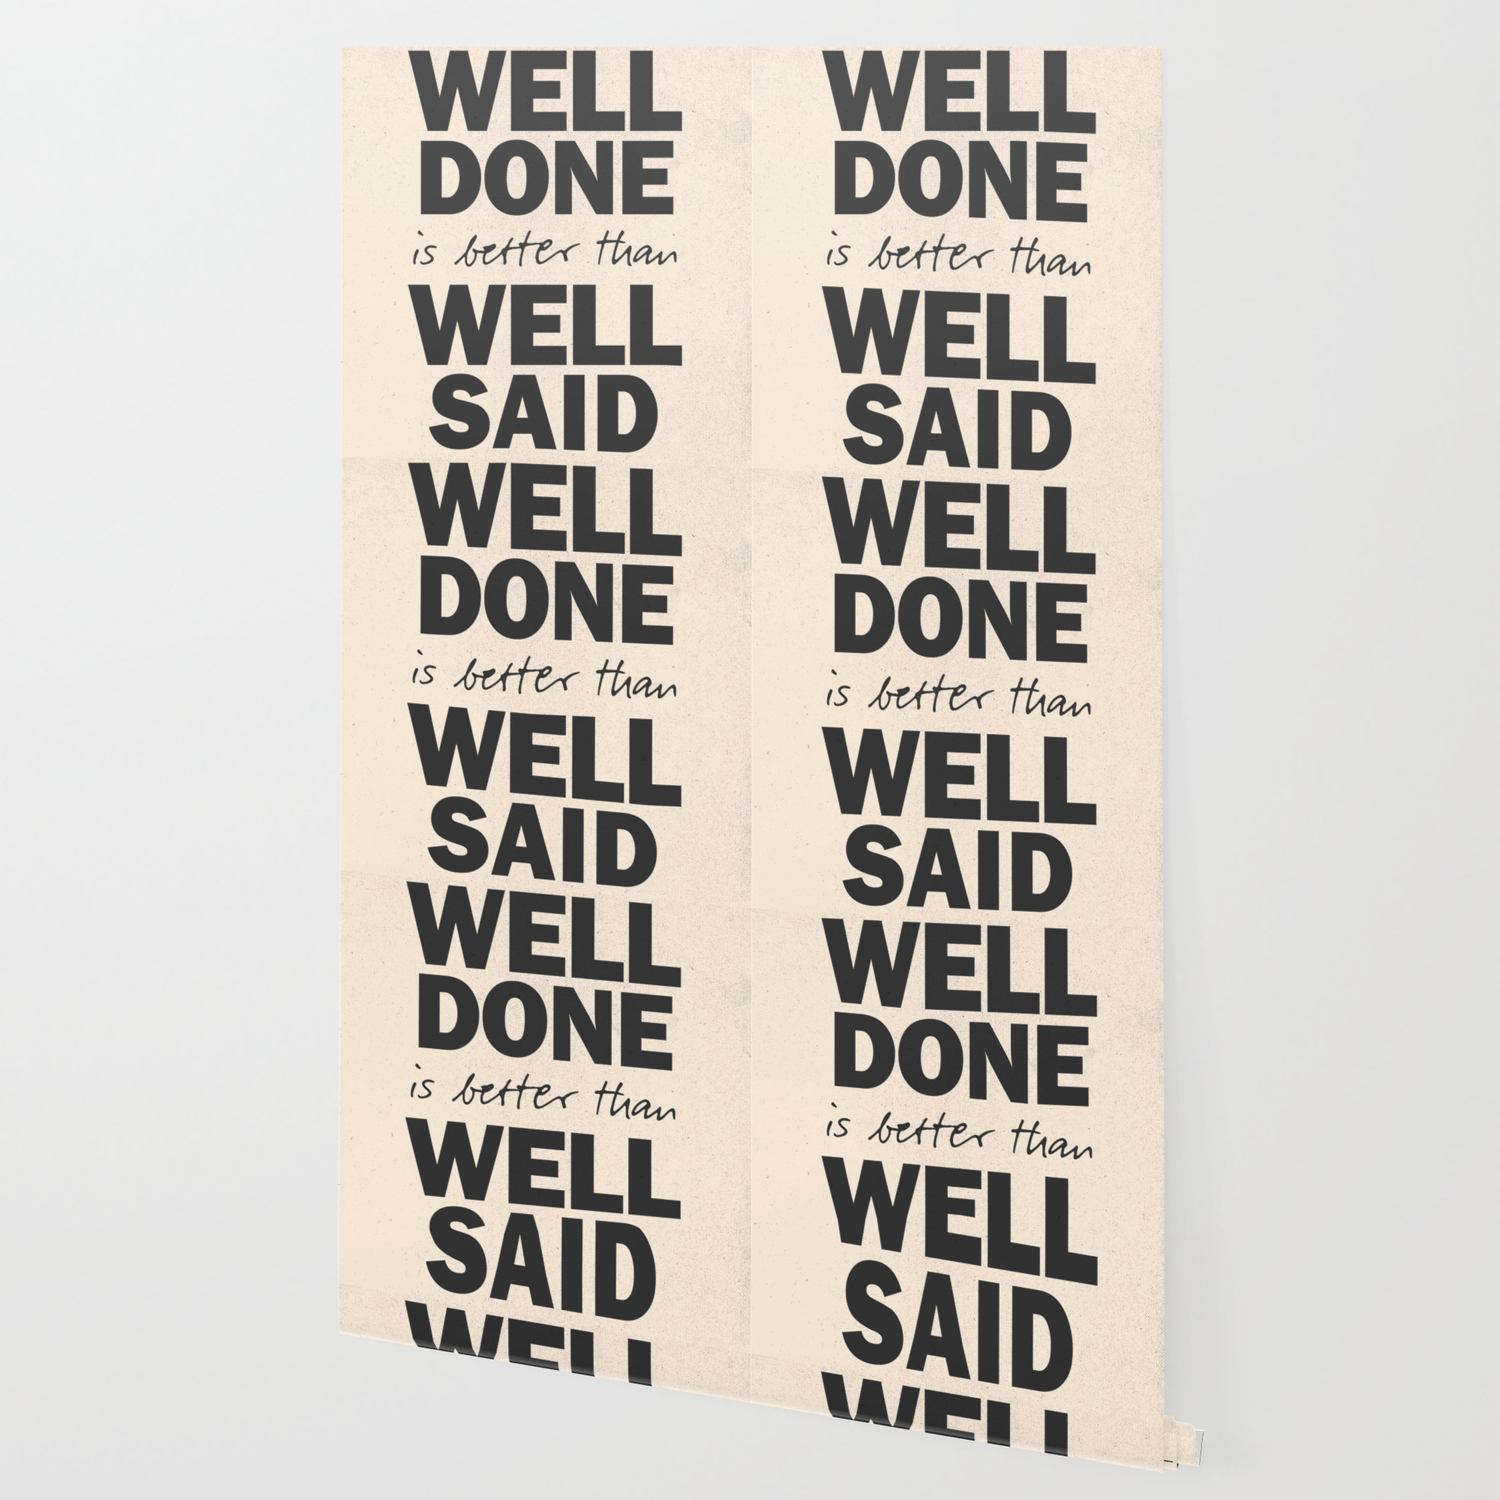 Well Done Is Better Than Well Said Benjamin Franklin Inspirational Quote For Motivation Work Hard Wallpaper